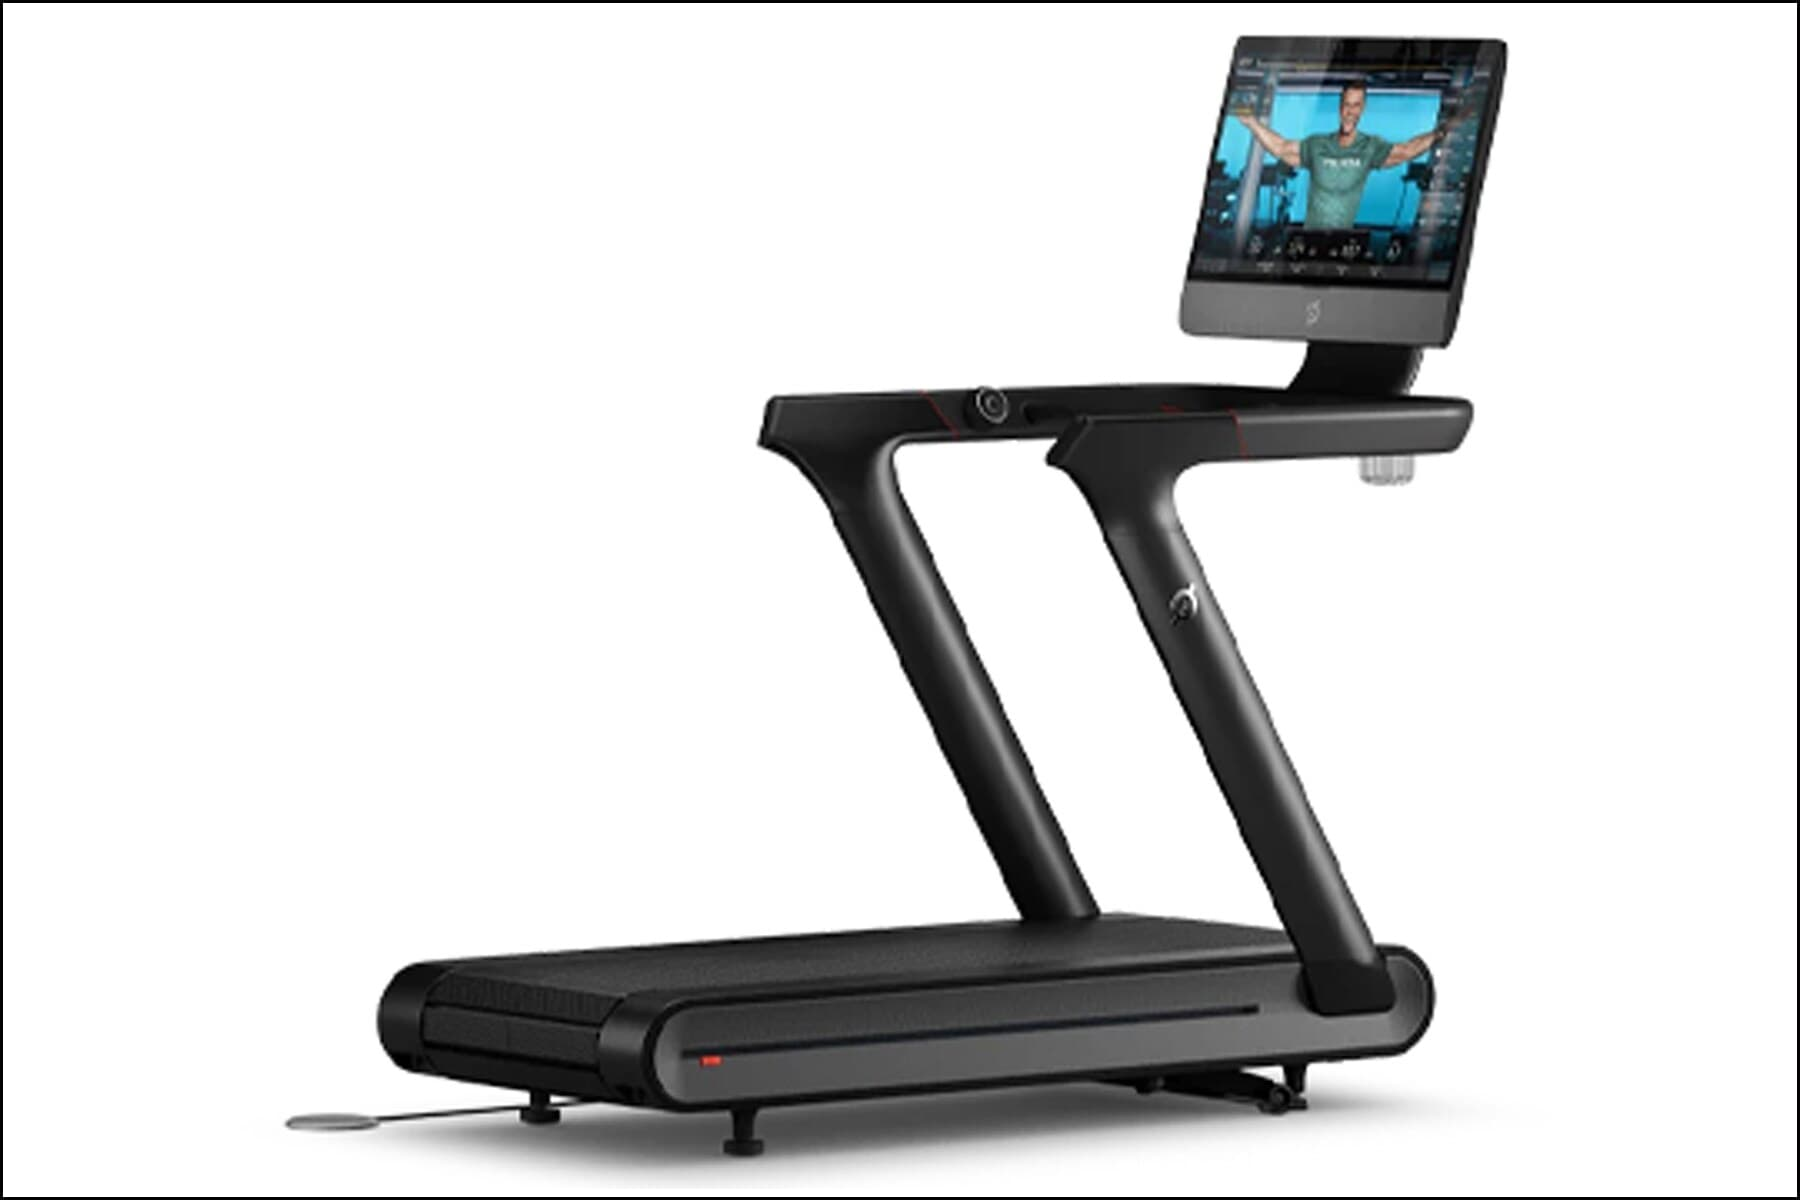 CPSC Warns Against Using Peloton Treadmill After Child's Death